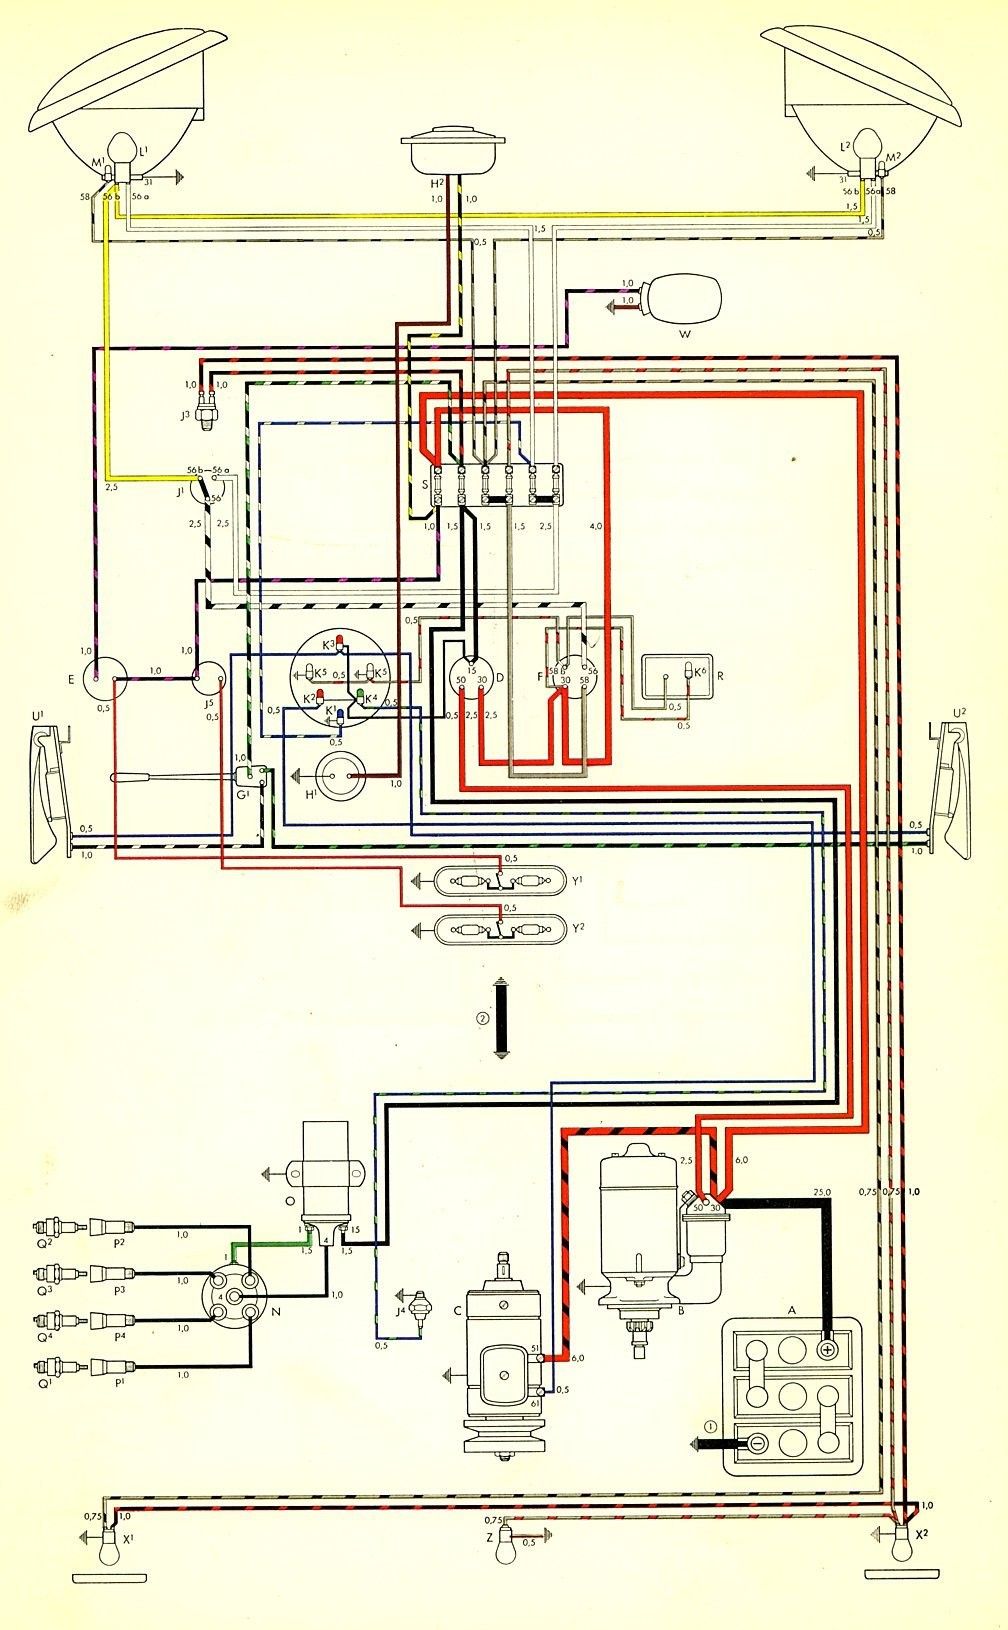 Trike Wiring Diagrams Library Vw Moreover 65 Mustang Harness Diagram Alternator Best Of Image 74